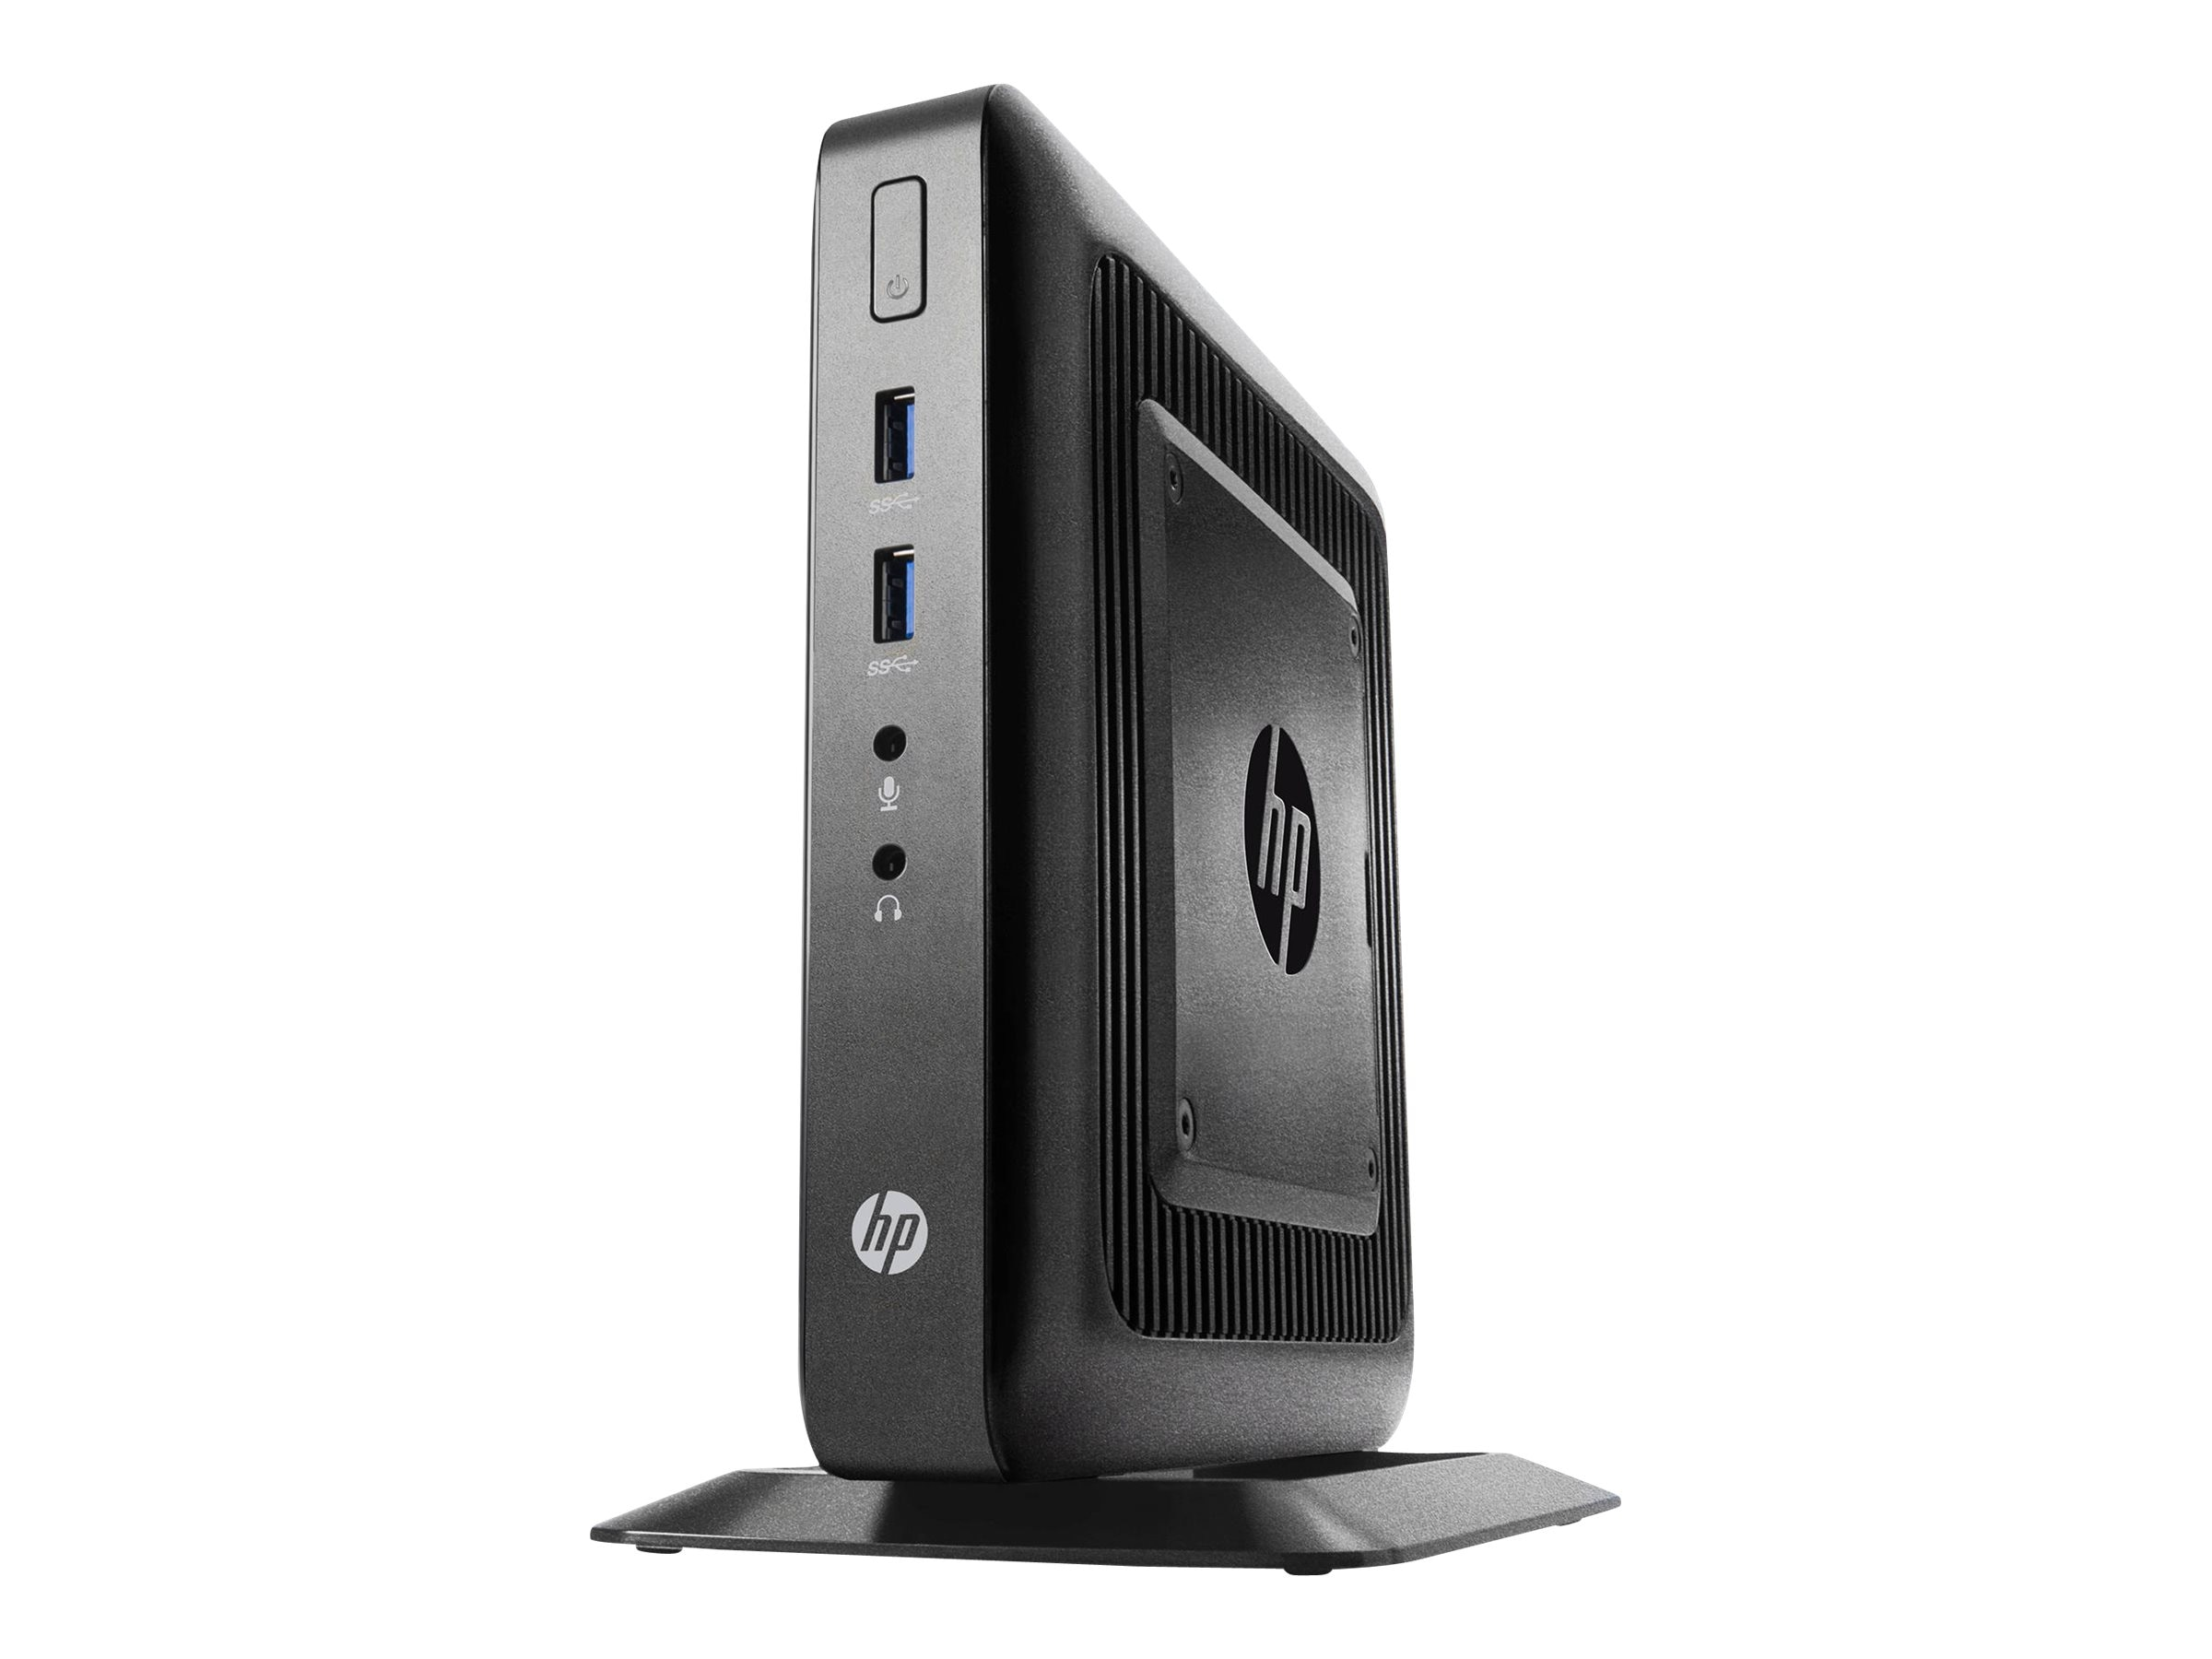 HP t520 Flexible Thin Client AMD DC GX-212JC 1.2GHz 8GB 64GB Flash GbE W10 IoT